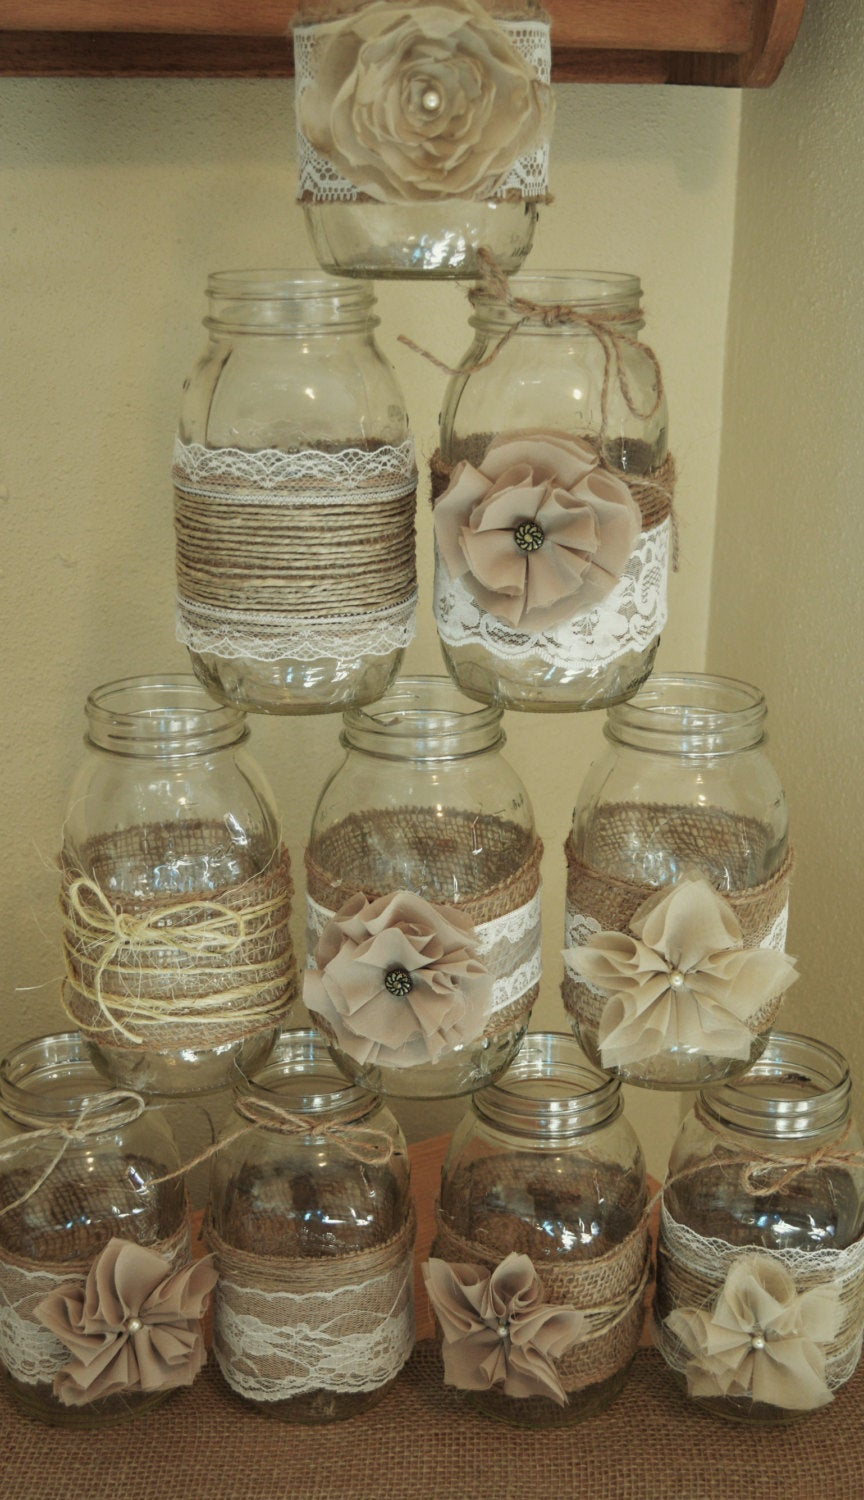 Set Of 10 Mason Jar Sleeves, Burlap Wedding Decorations, Rustic Centerpieces, & Lace, Not Included